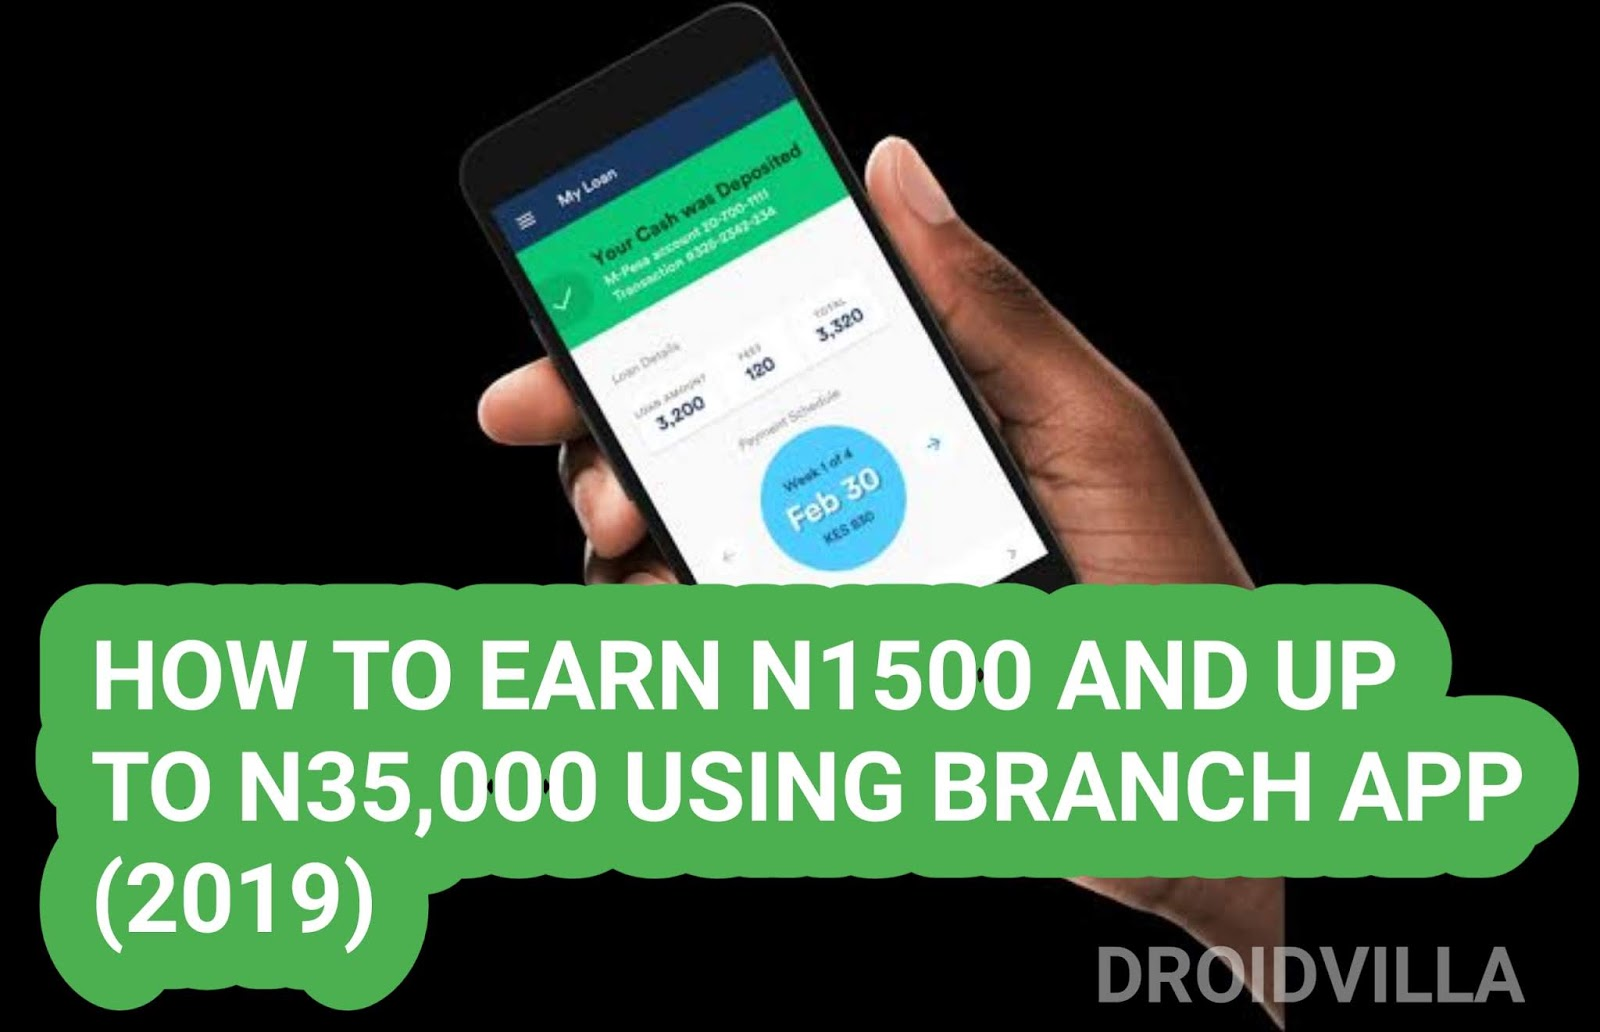 Update: How To Earn N1500 and Up to N35,000 Weekly From Branch App